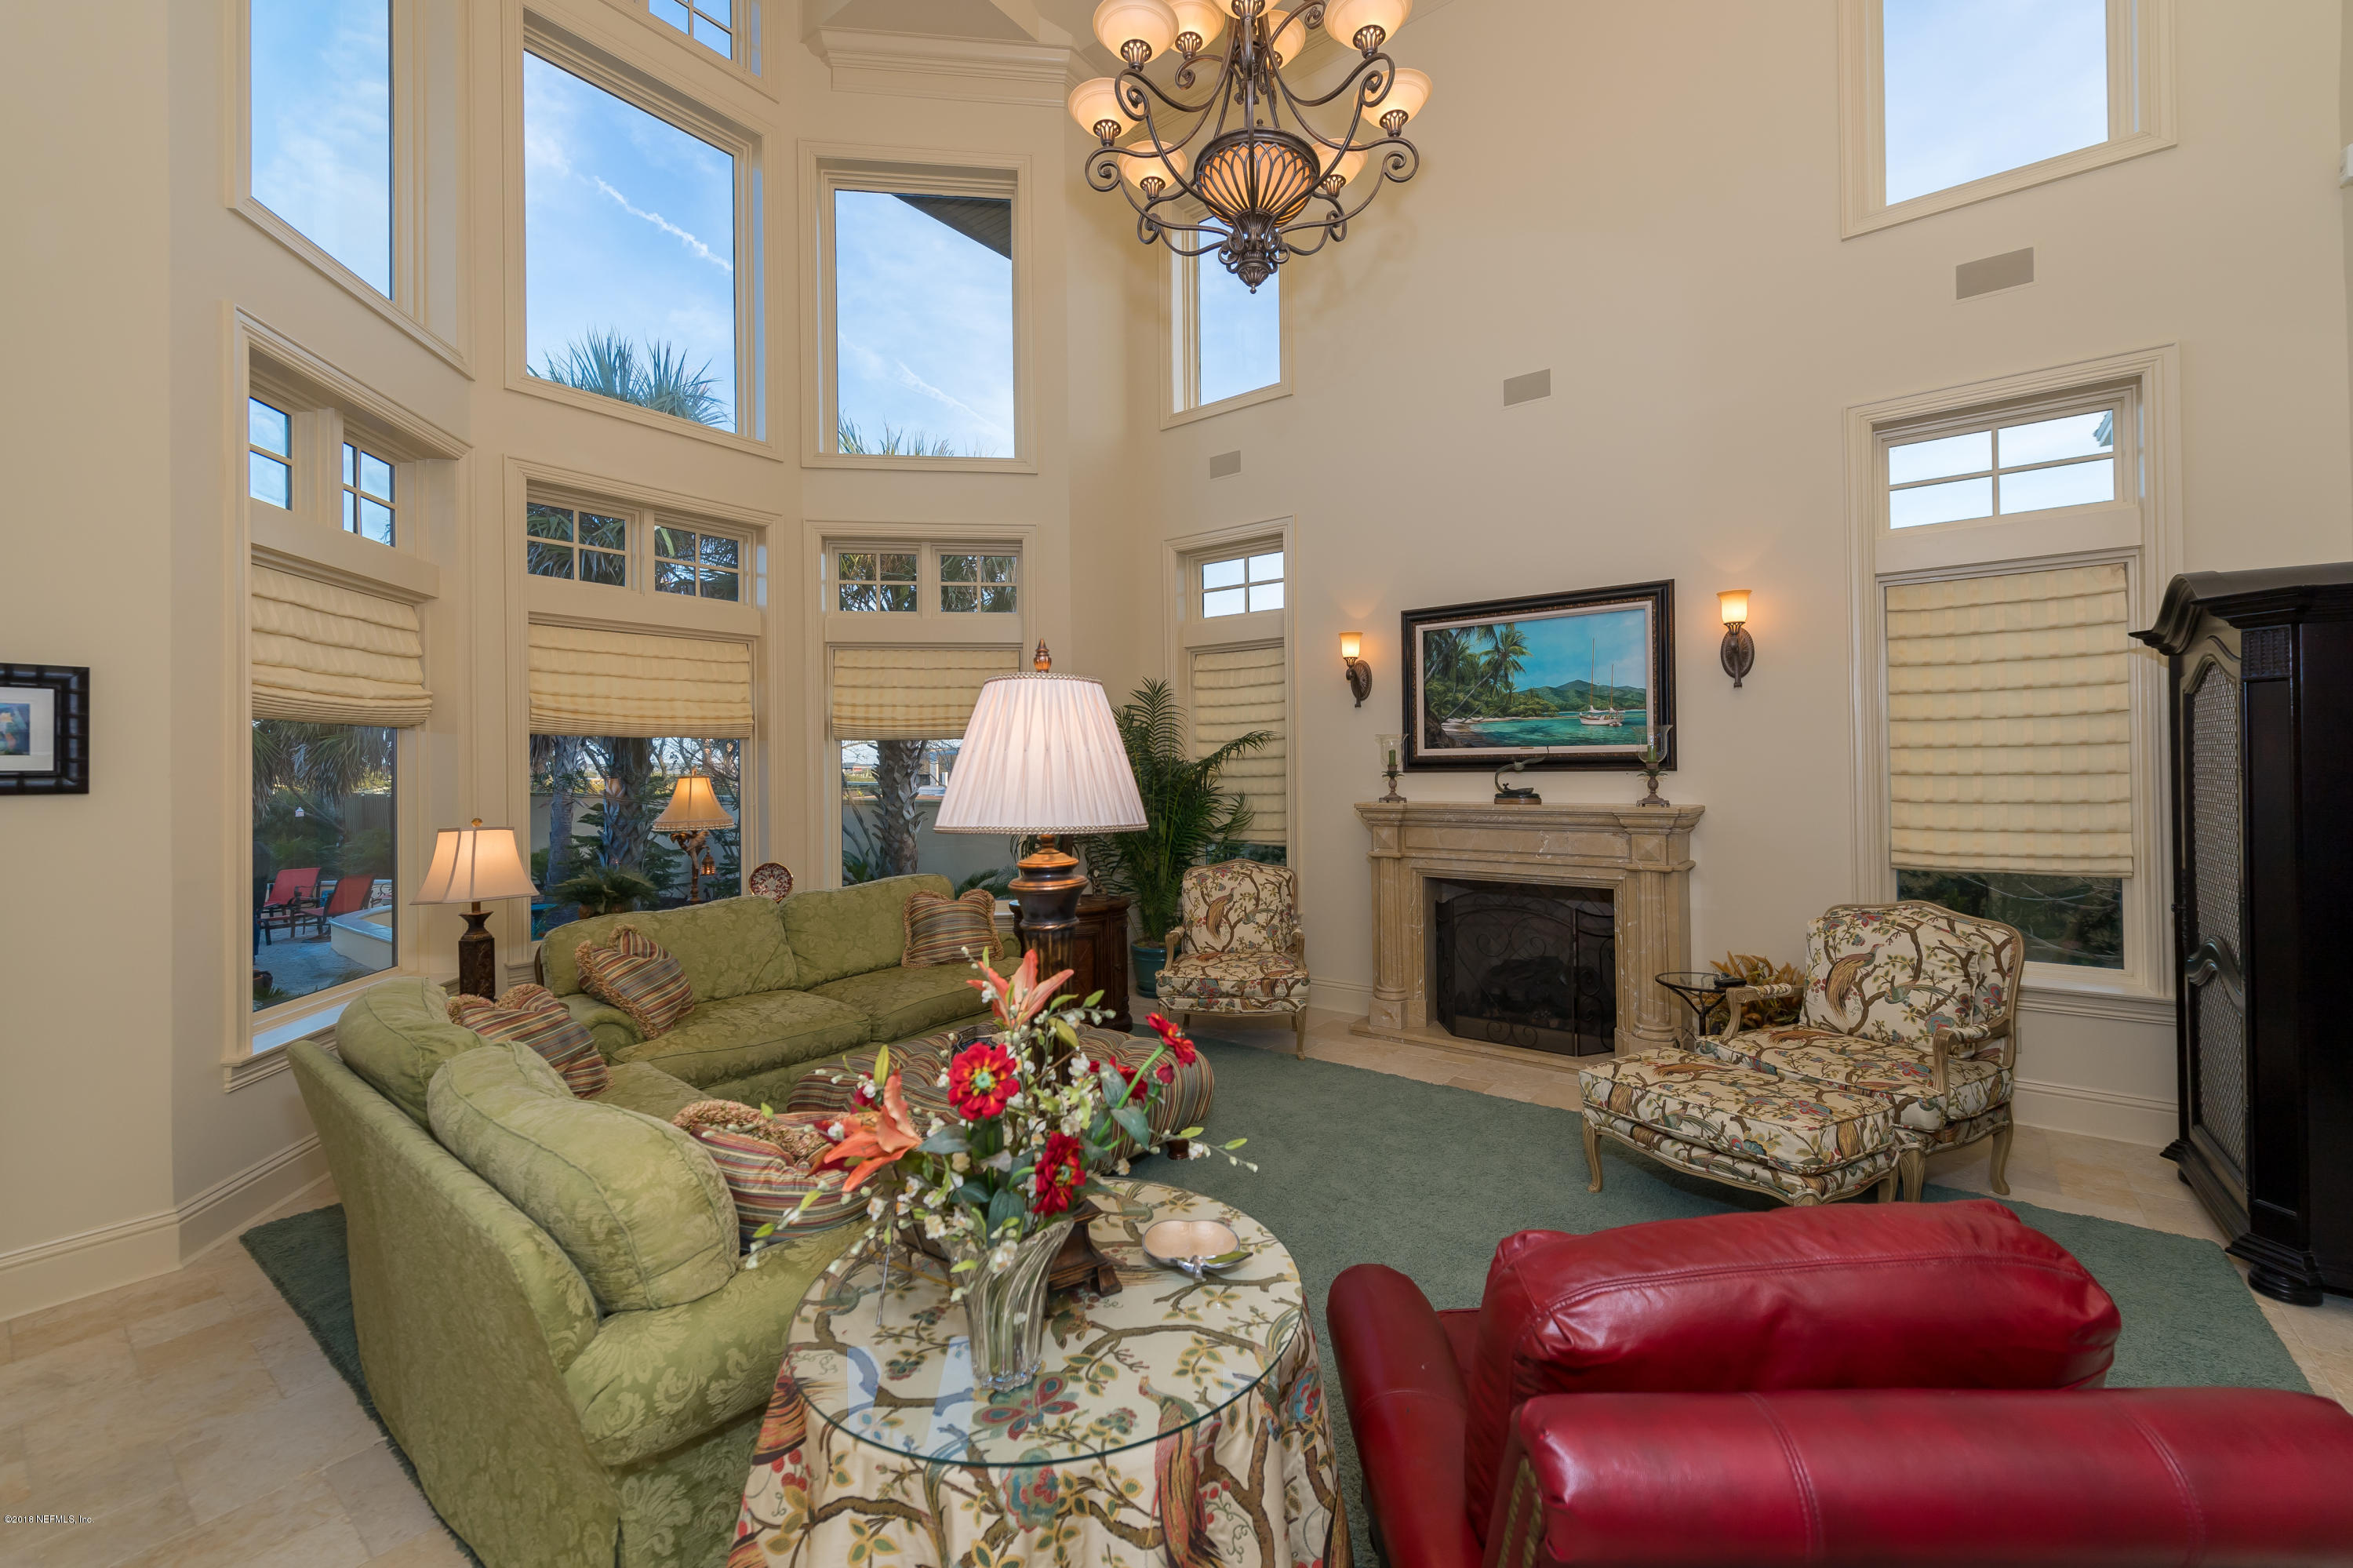 7965 A1A, ST AUGUSTINE, FLORIDA 32080, 5 Bedrooms Bedrooms, ,5 BathroomsBathrooms,Residential - single family,For sale,A1A,925432